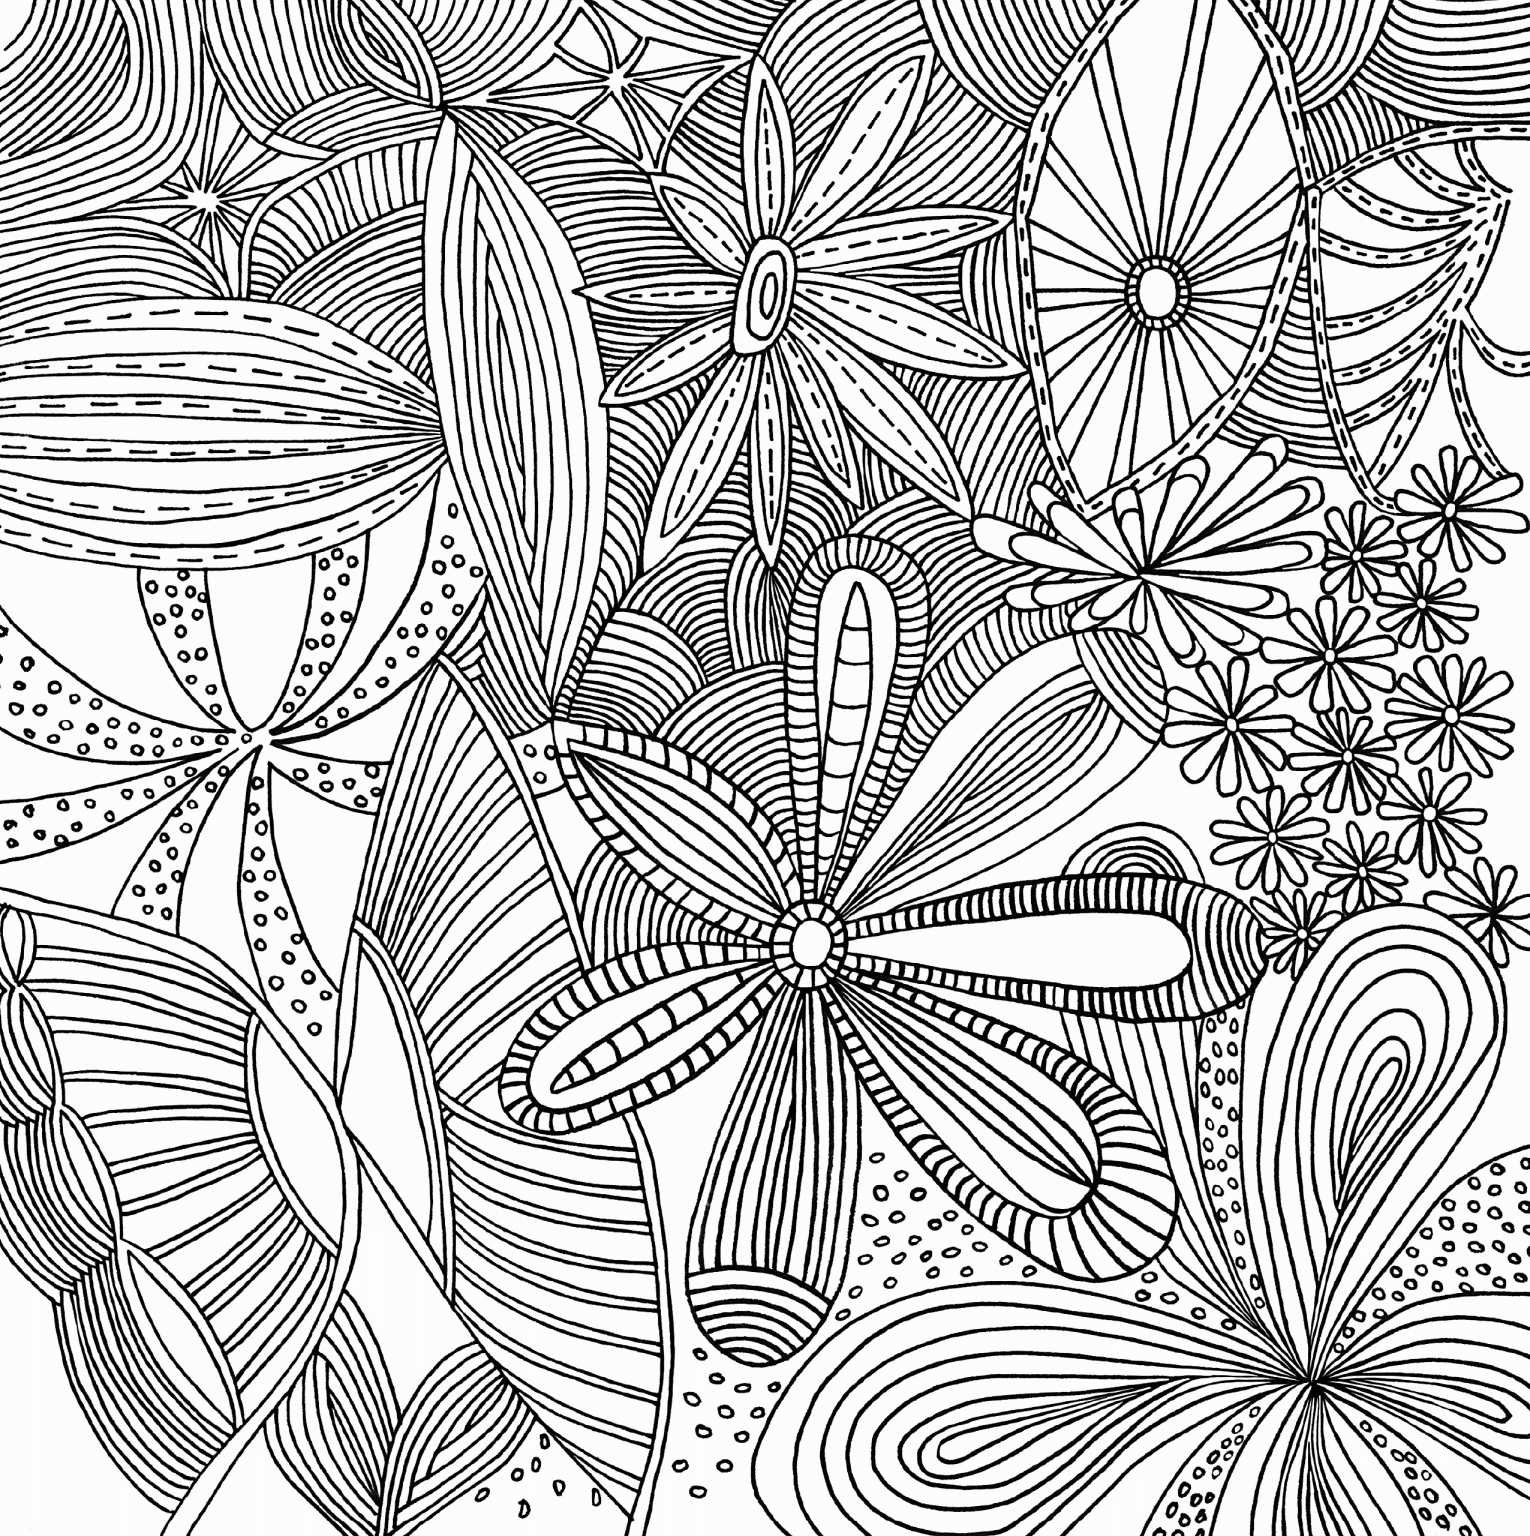 free number coloring pages Download-Coloring Pages with Numbers Christmas Elegant Free Christmas Coloring Pages by Numbers Cool Coloring Printables 0d 15-f